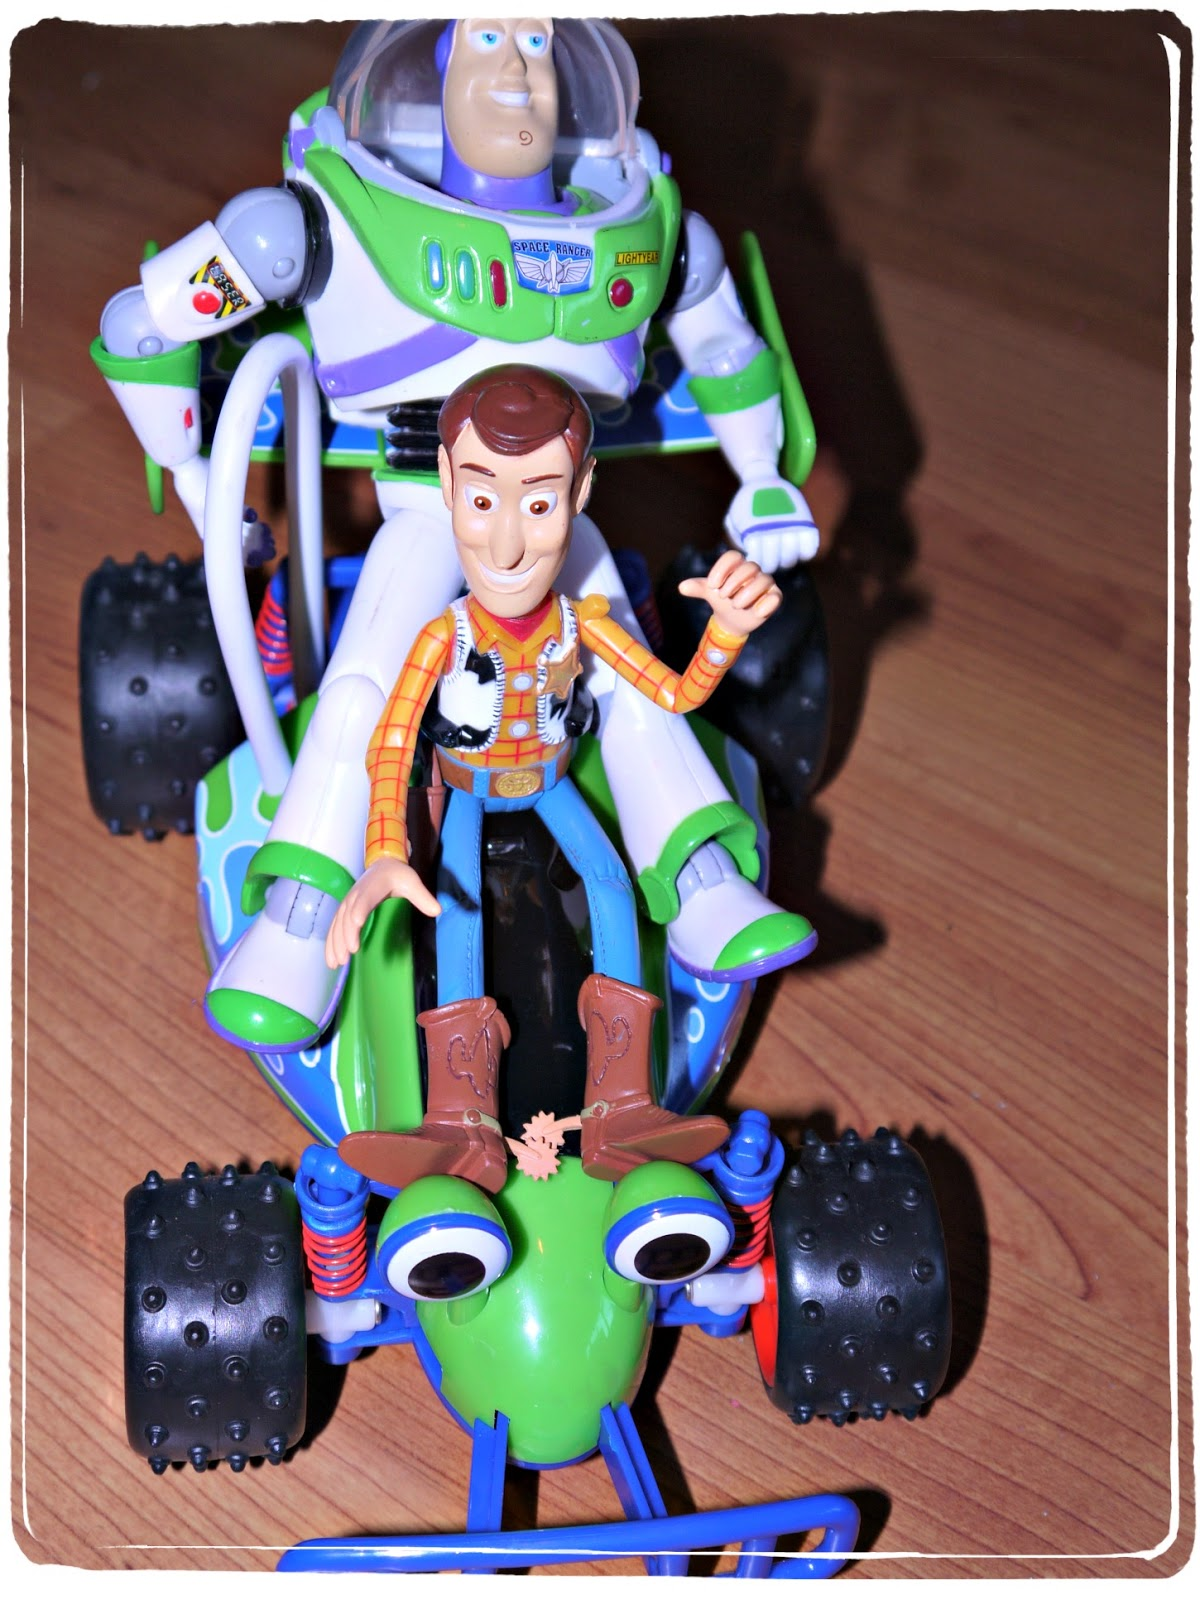 Toy Story Cracked Magazine: Inside The Wendy House: Toy Story Remote Control RC Review